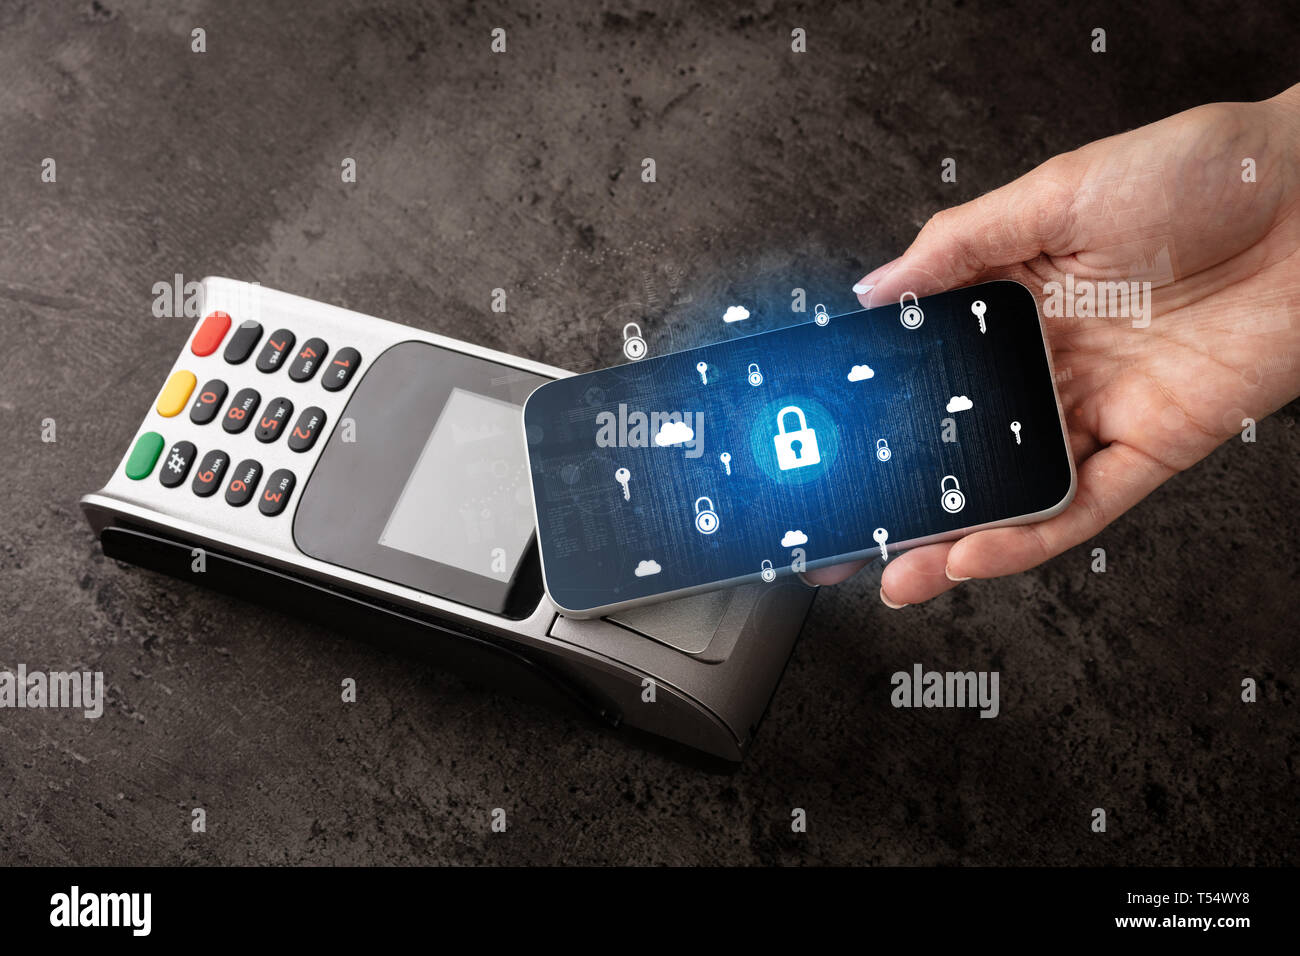 Hand paying with cellphone on POS, secure payment concept  - Stock Image